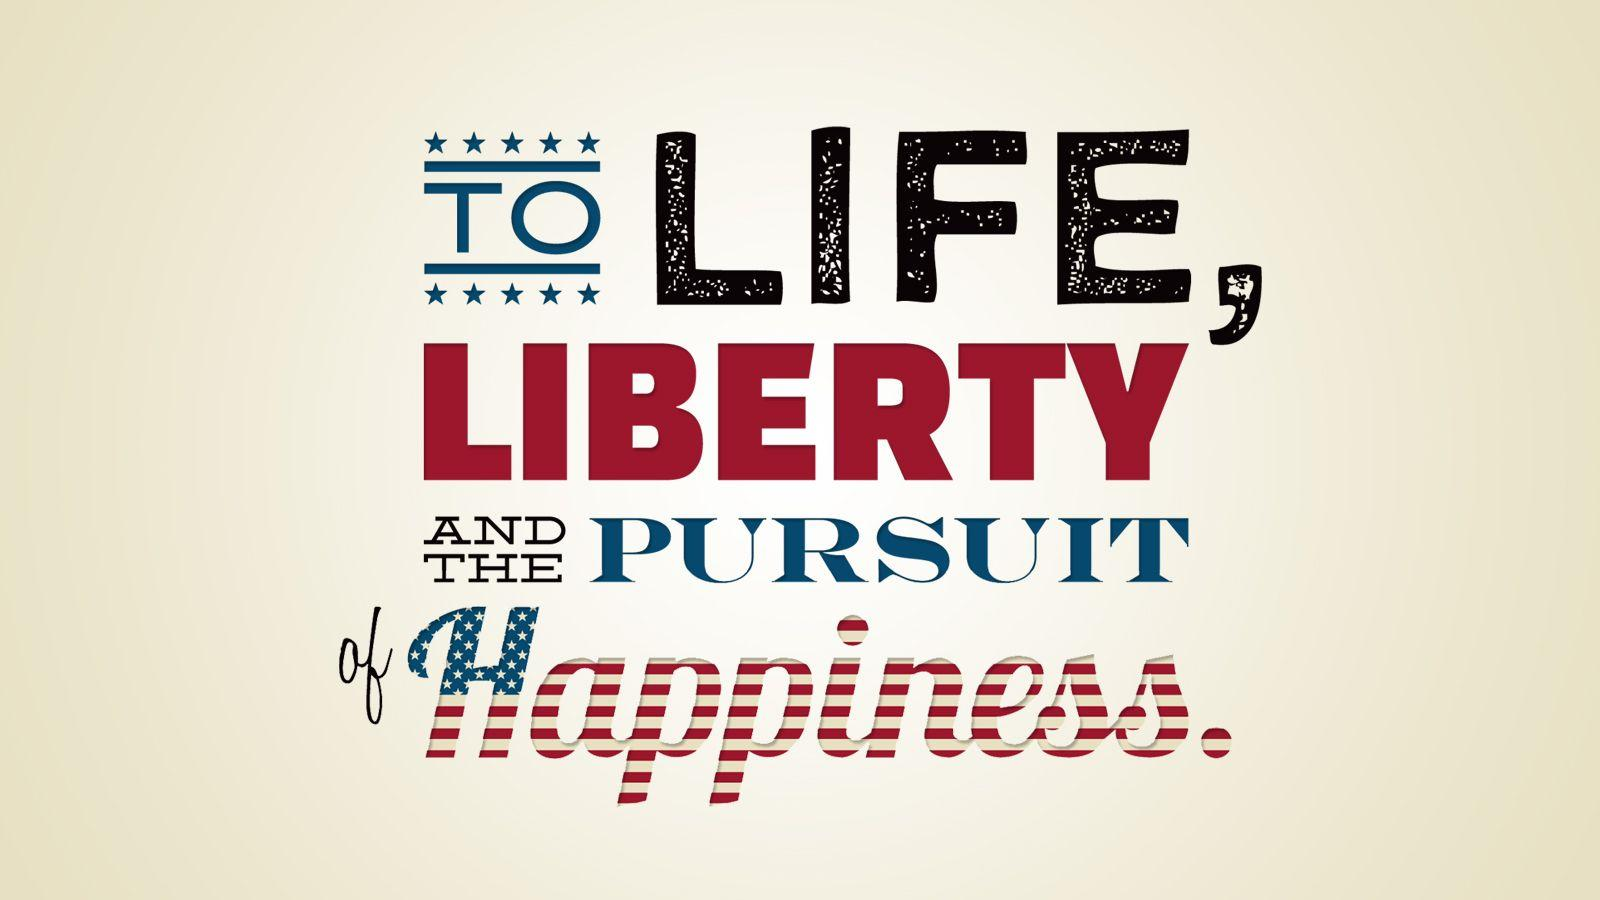 Pursuit Of Happiness Hd Wallpapers With Quotes The Pursuit Of Happiness Quote Wallpapers Hd Wallpaper Cave